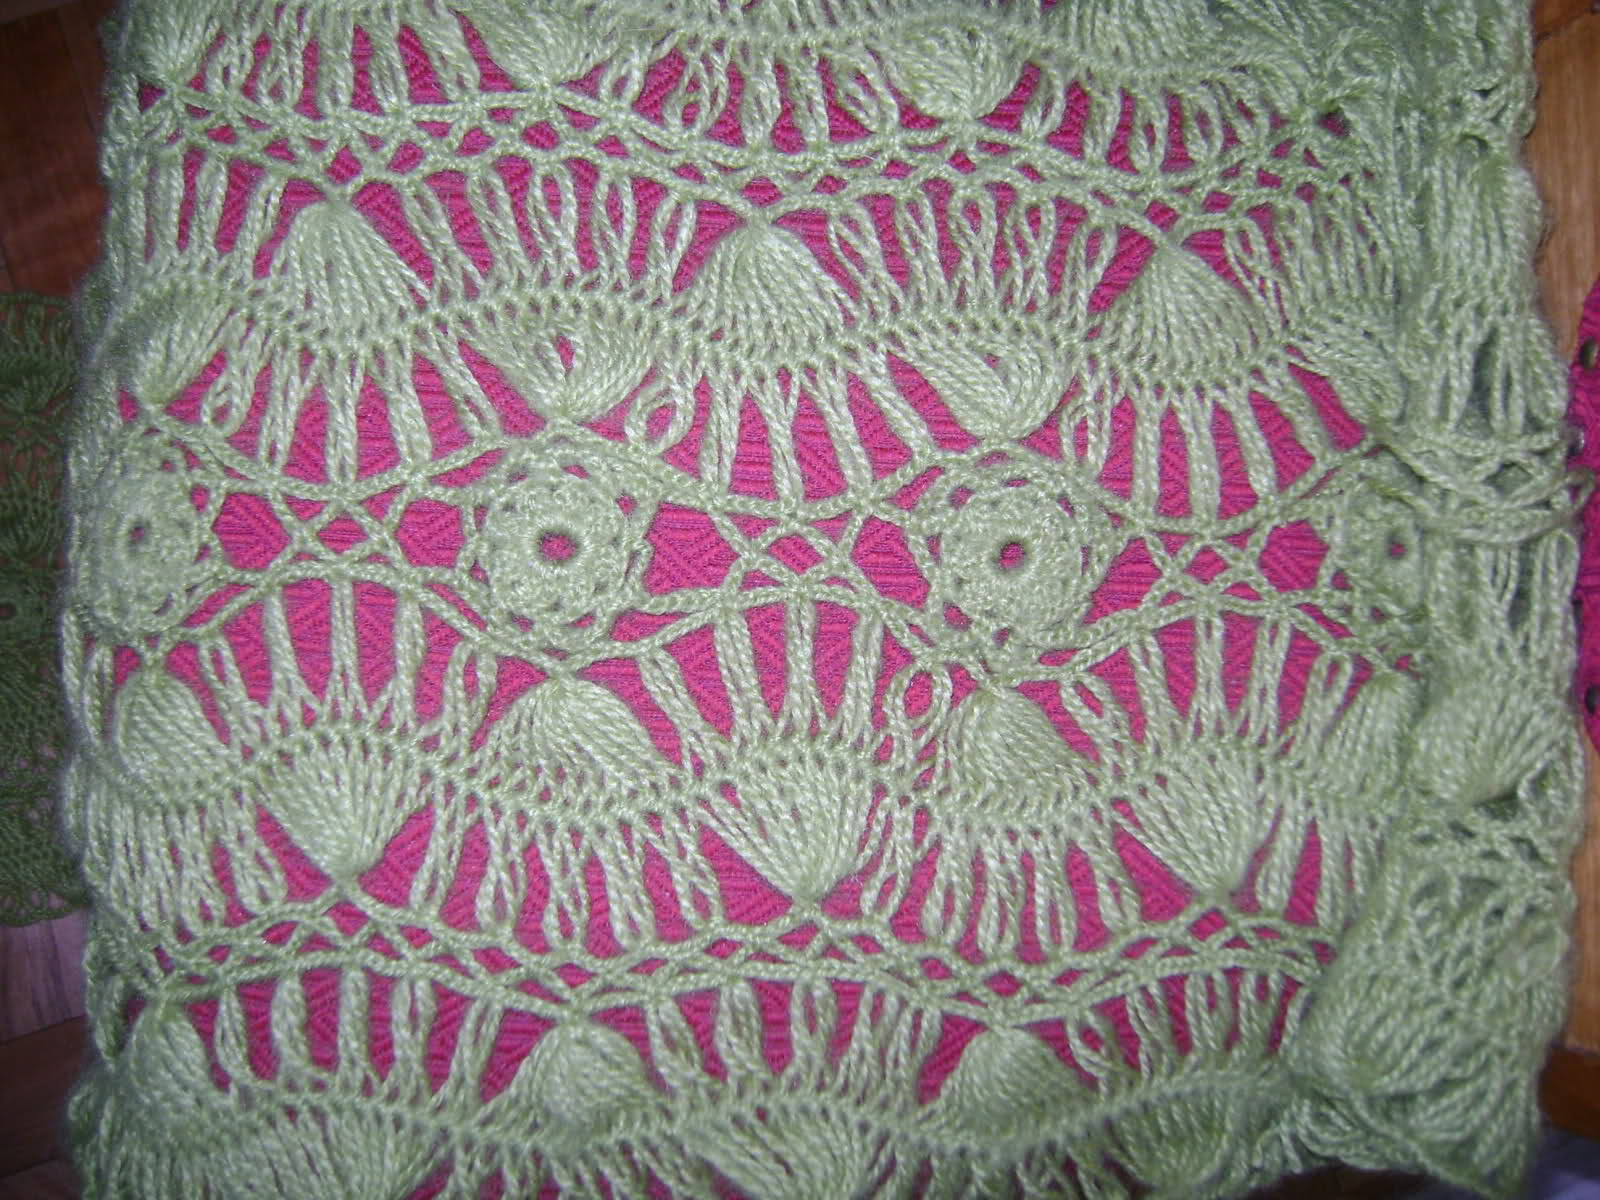 Crochet con Horquilla - Simple Crochet